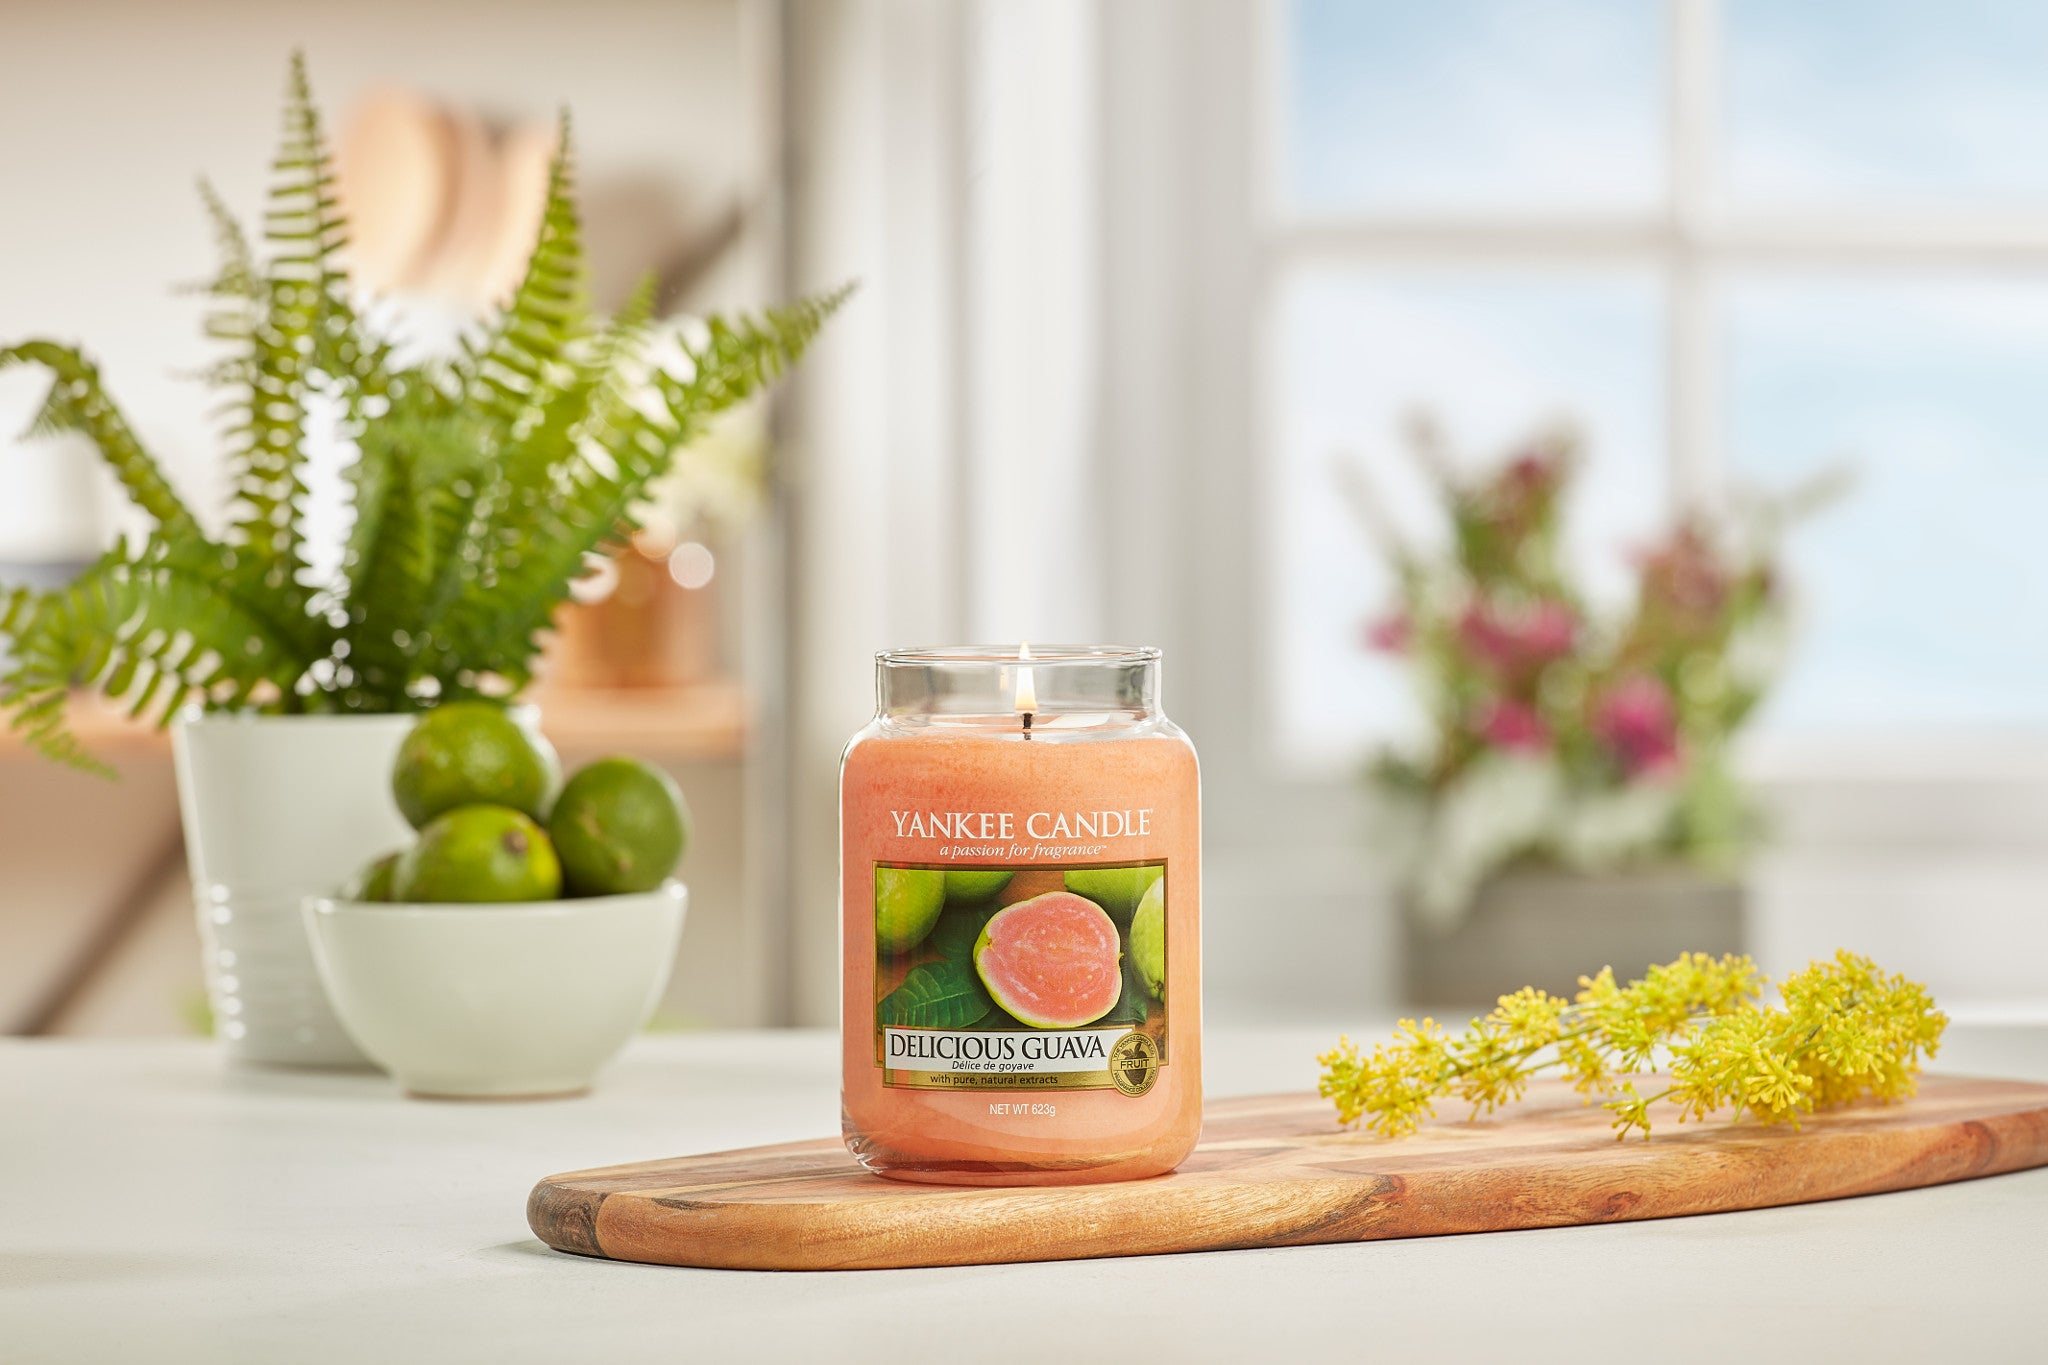 DELICIOUS GUAVA -Yankee Candle- Tea Light